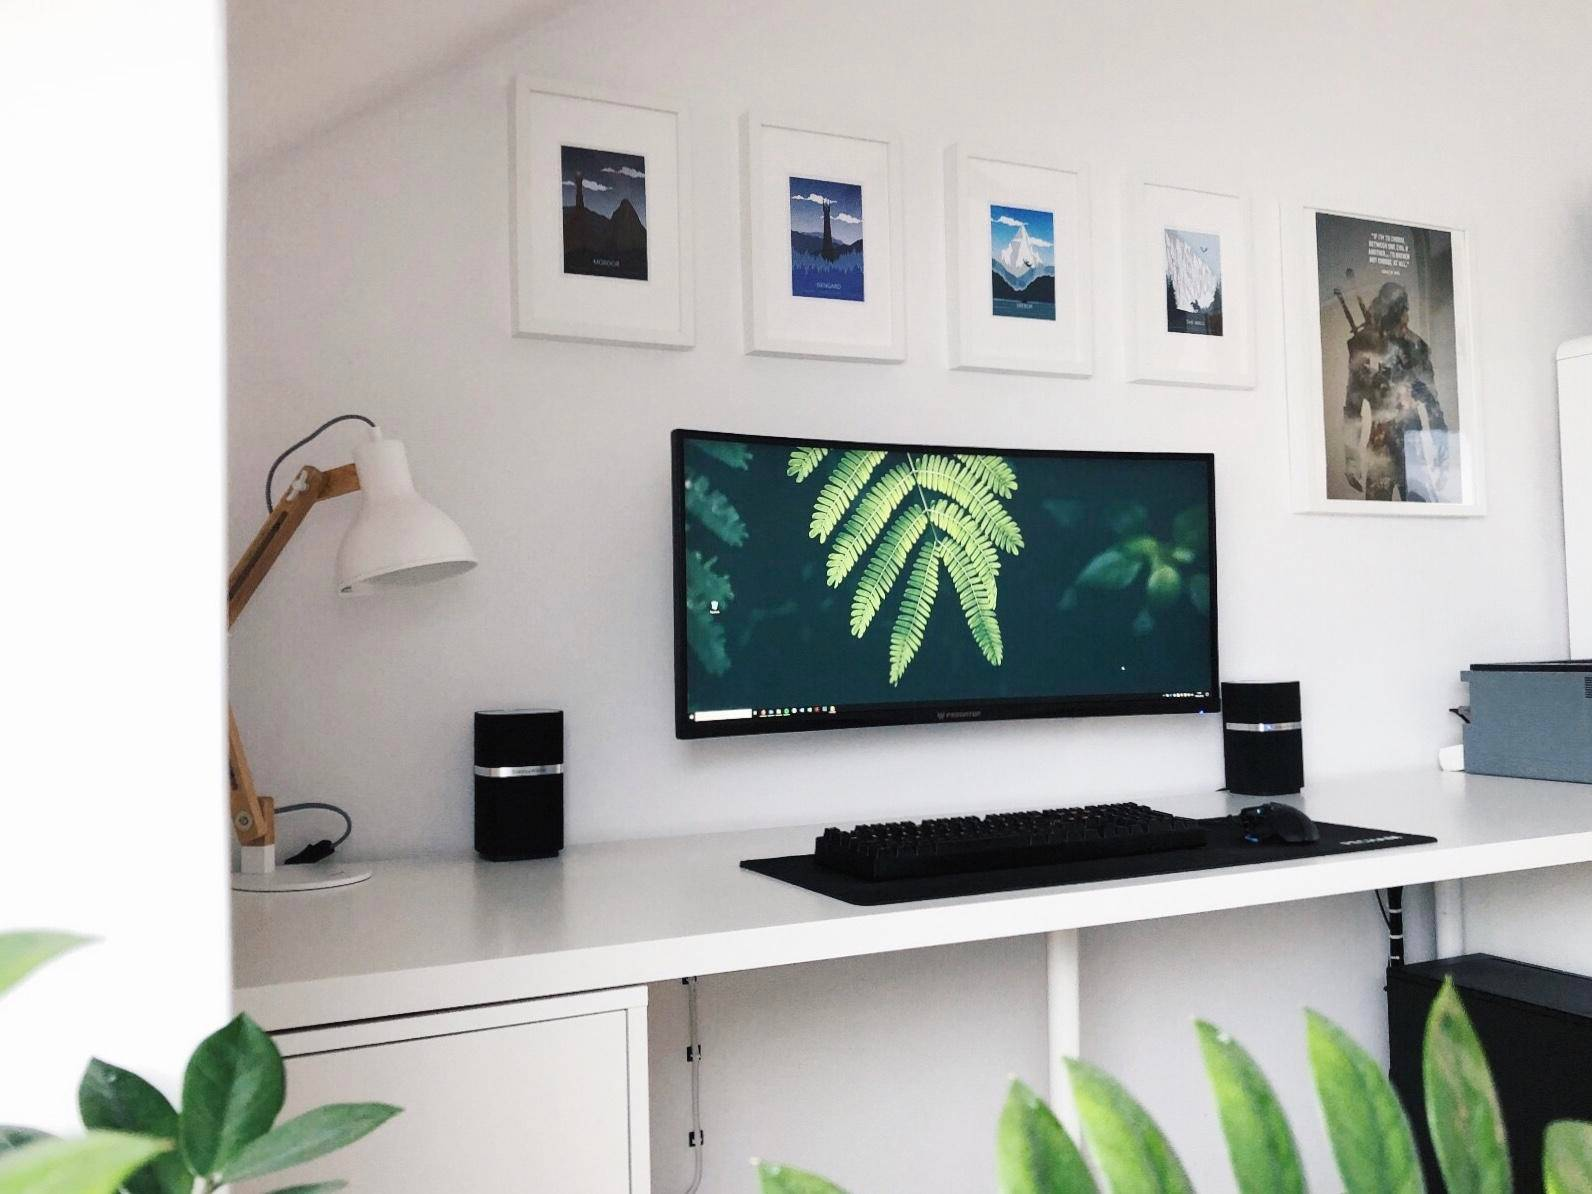 """markscooge's Setup - """"Clean and simple"""" 